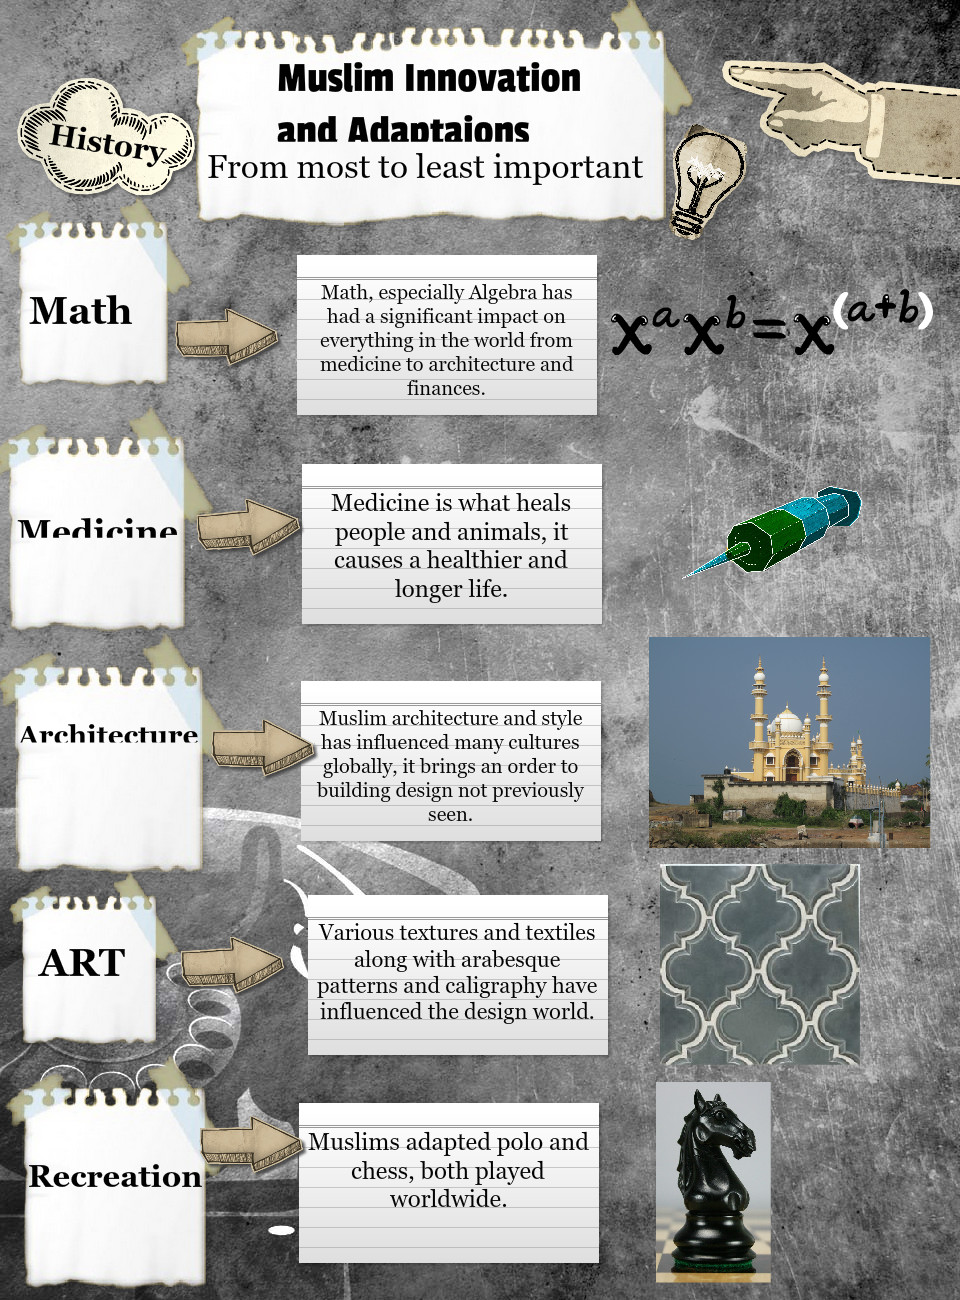 Muslim Innovation and Adaptaions